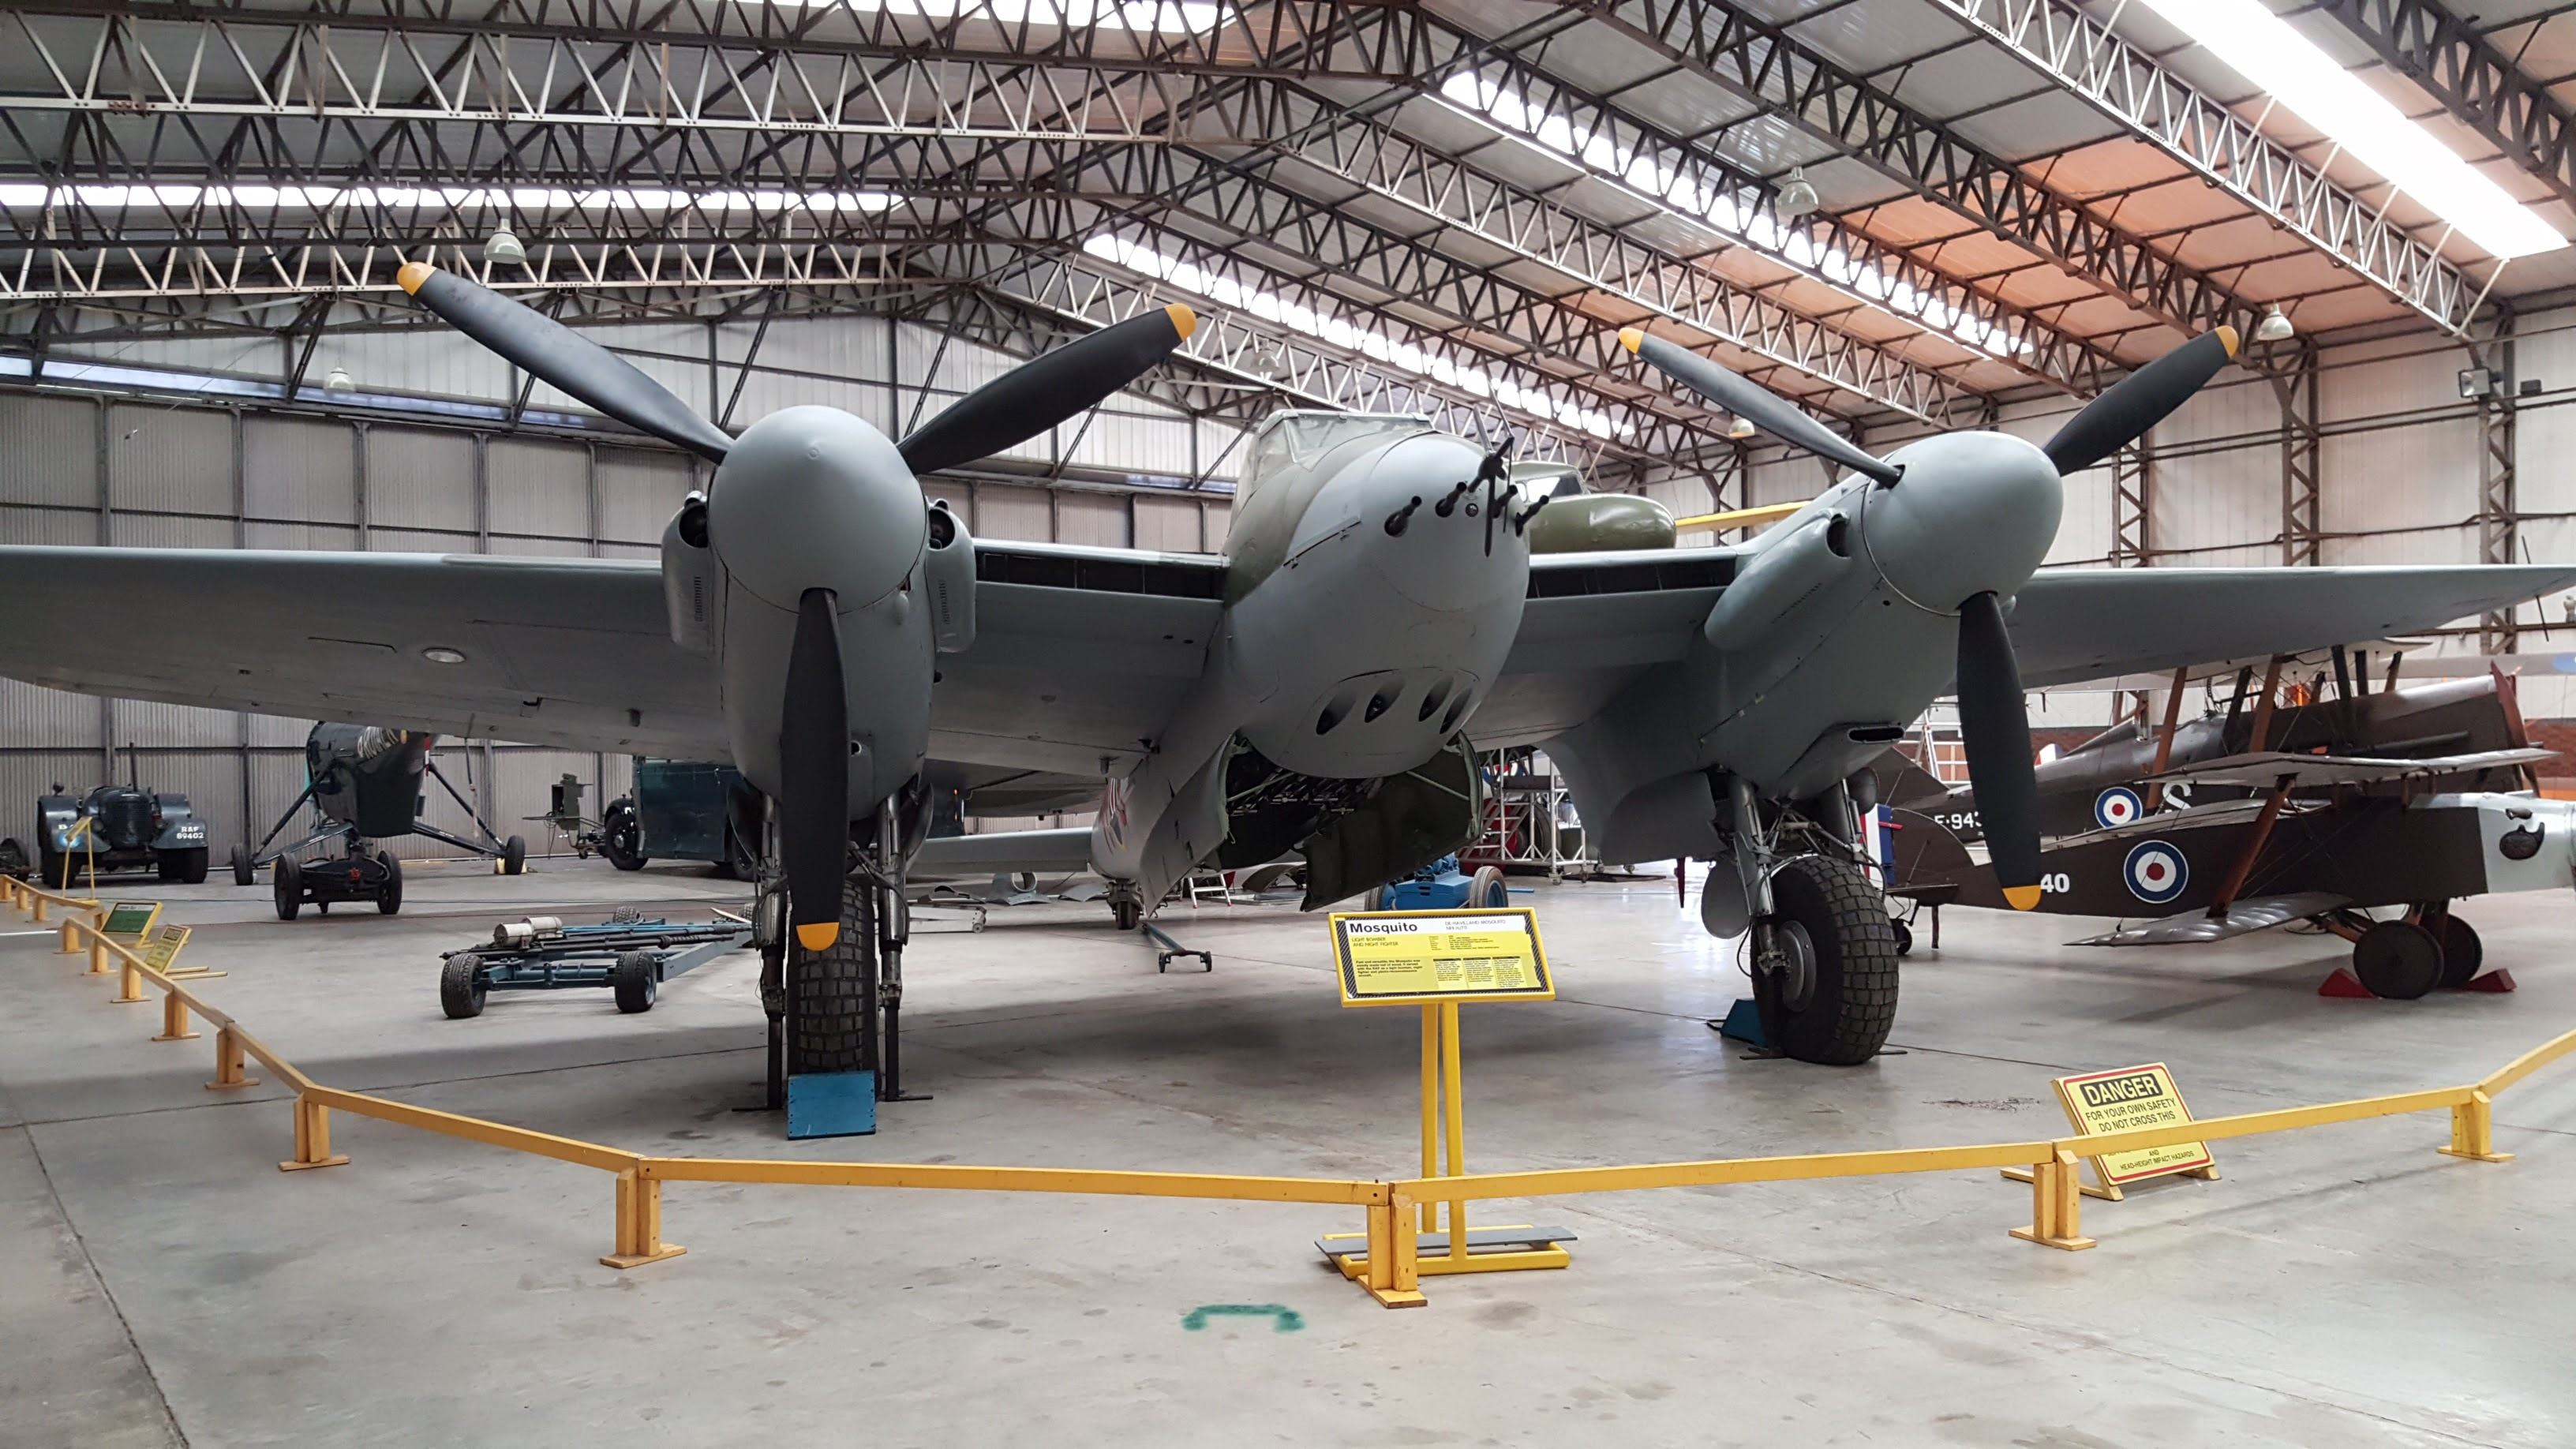 De Havilland Mosquito at Yorkshire Air Museum